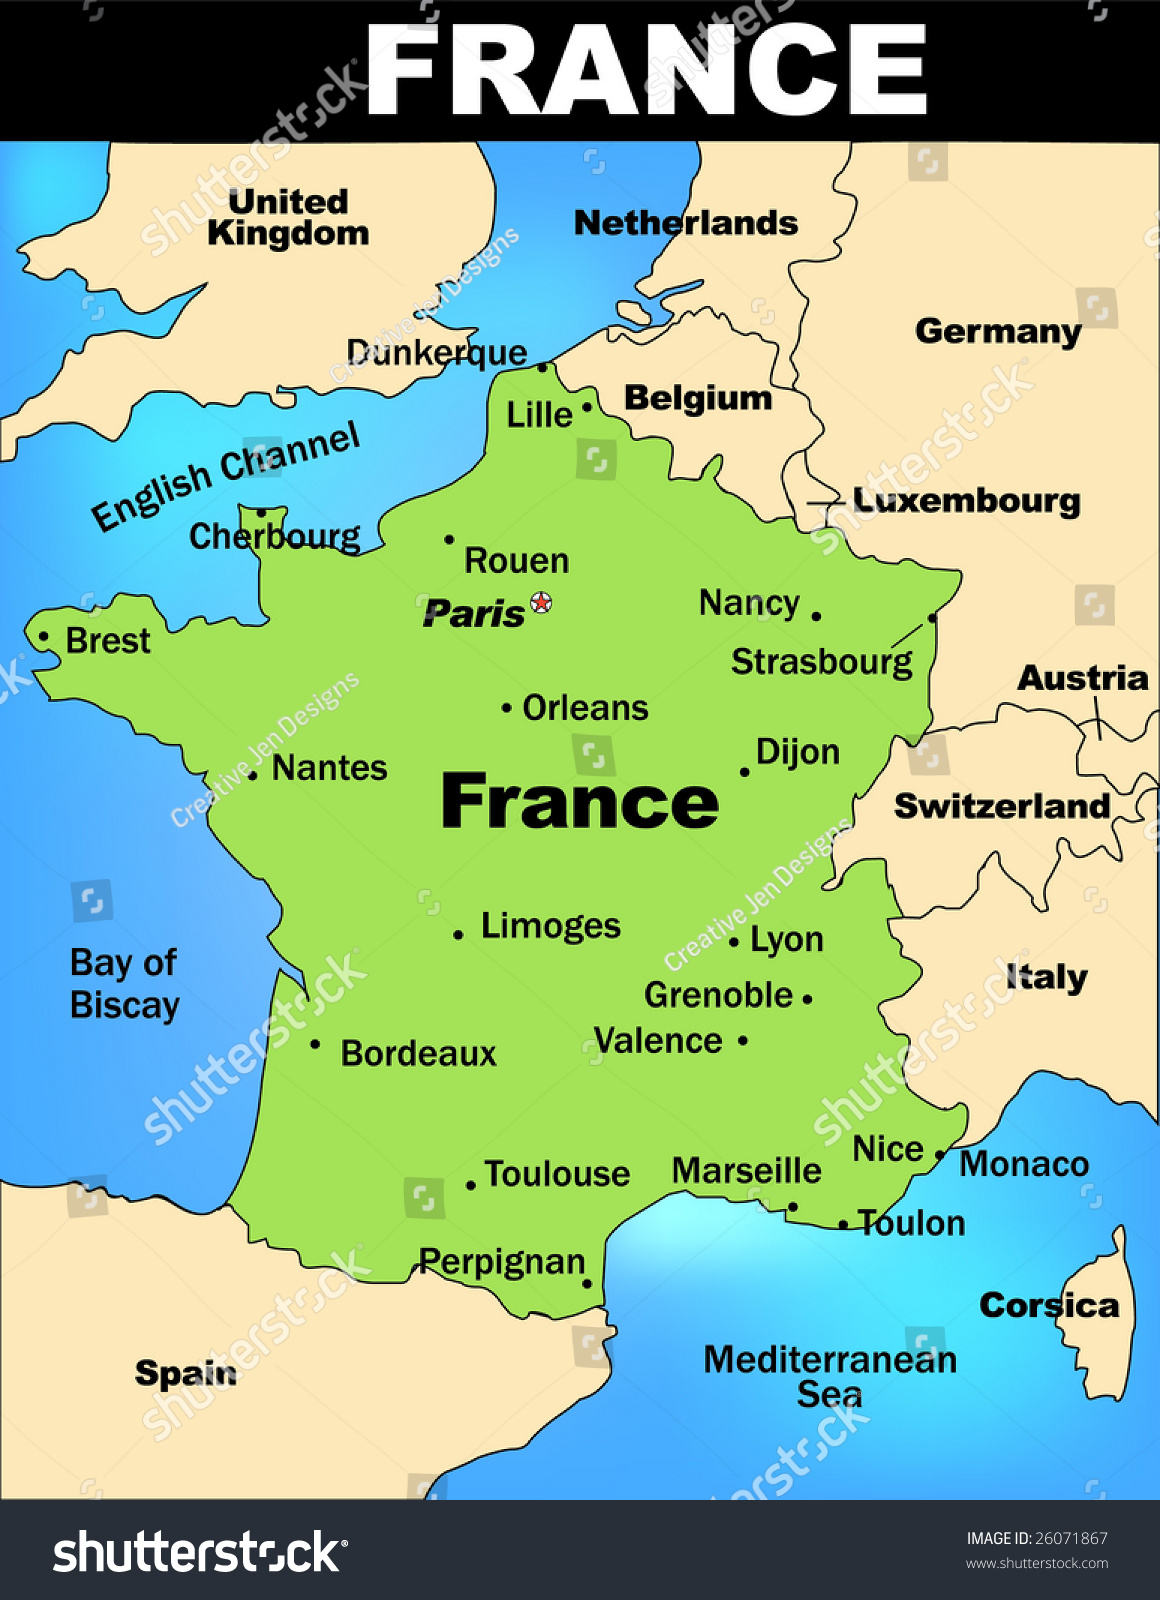 Detailed Illustrated Map France Stock Vector 2018 26071867